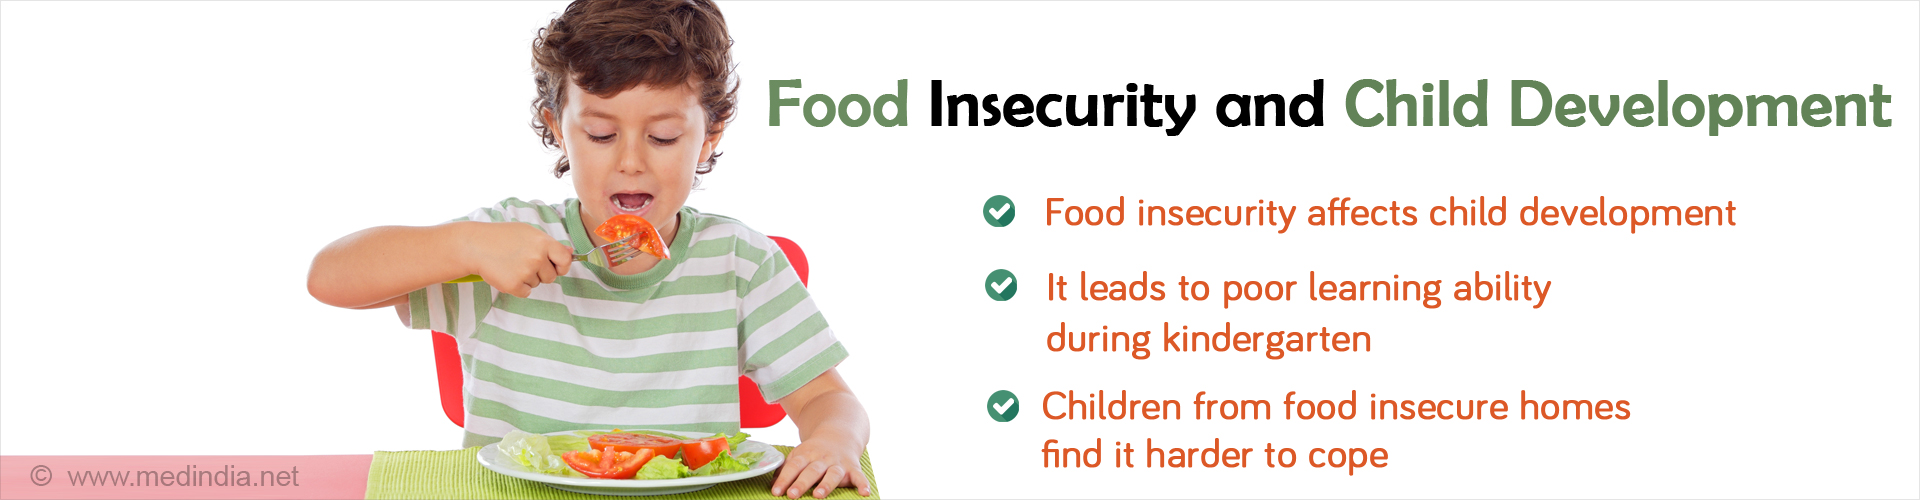 Food Insecurity and Child Development - Food insecurity affects child development - It leads to poor learning ability during kindergarten - Children from food insecure homes find it harder to cope